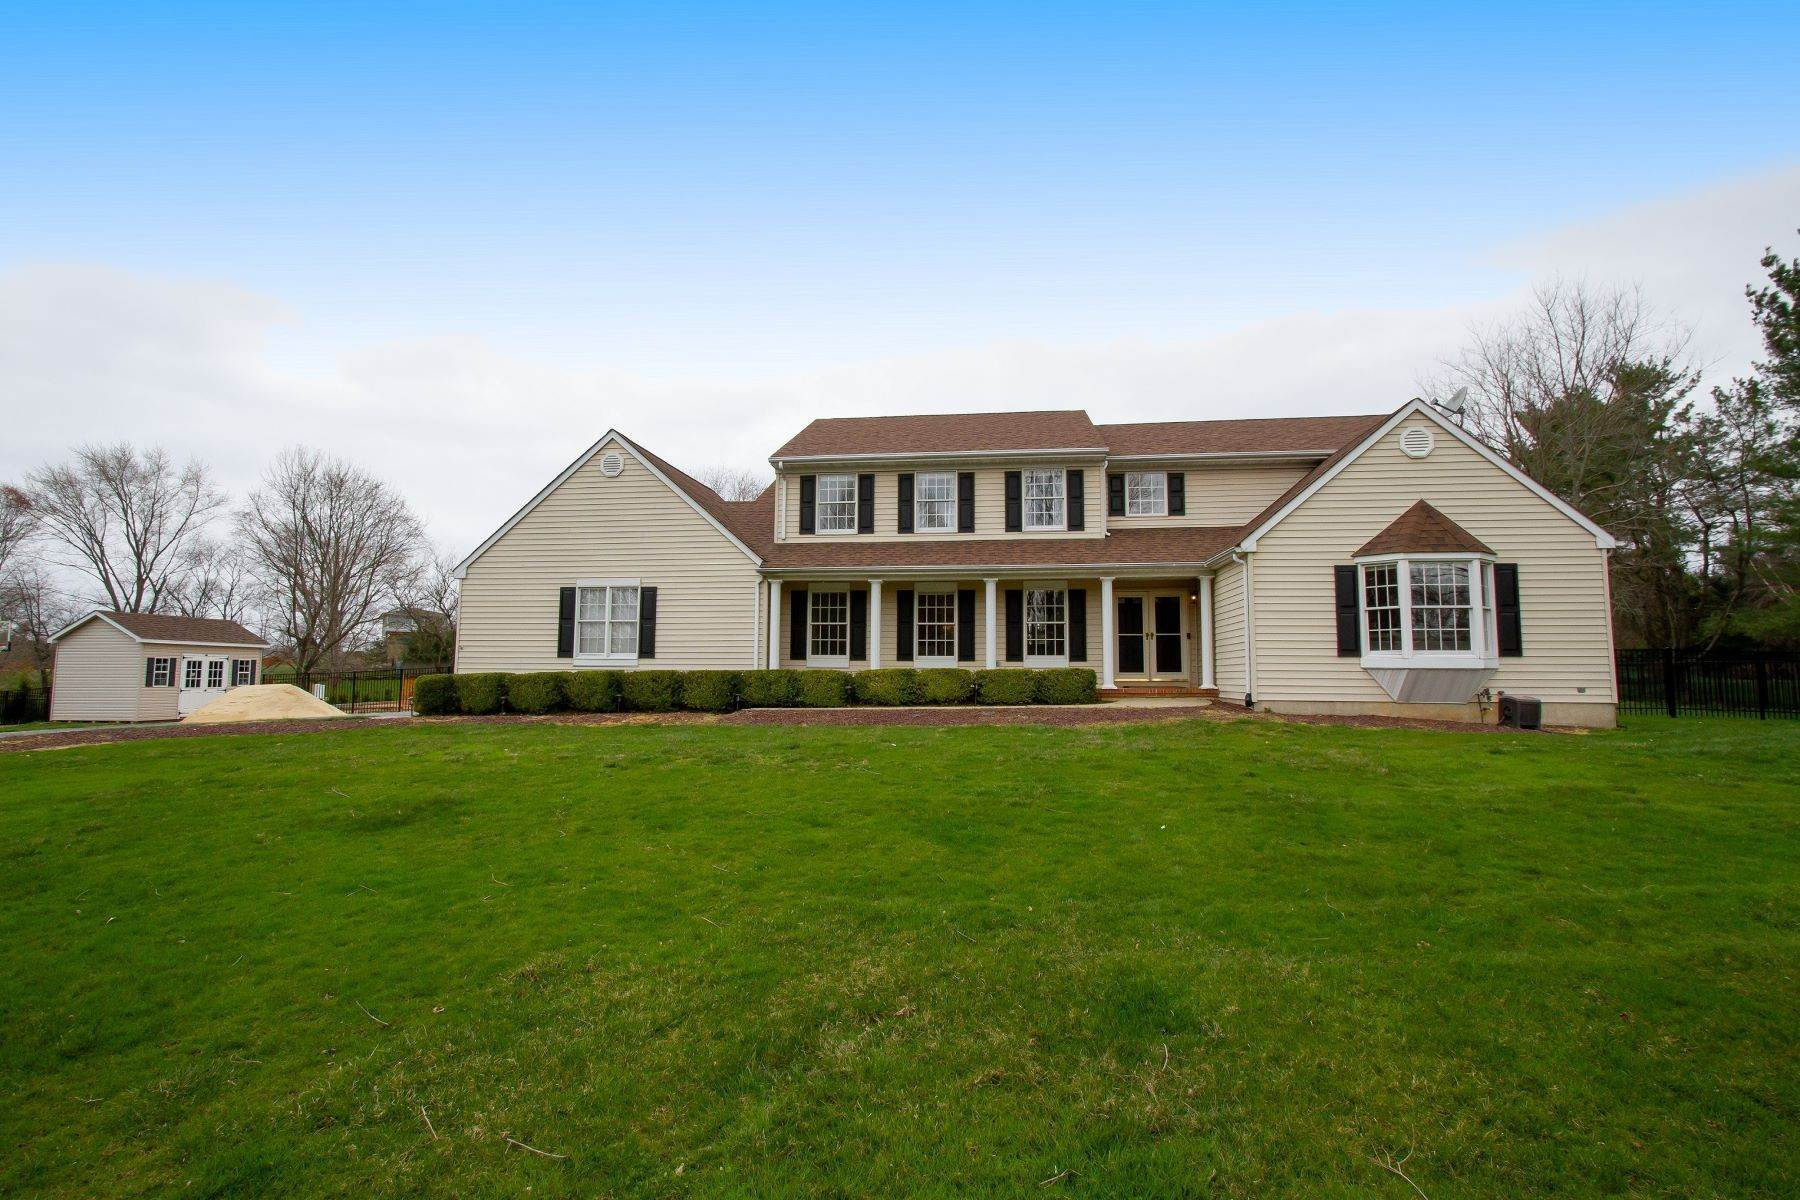 Single Family Homes pour l Vente à 19 Red Hawk Road S 19 Red Hawk Rd S Colts Neck, New Jersey 07722 États-Unis